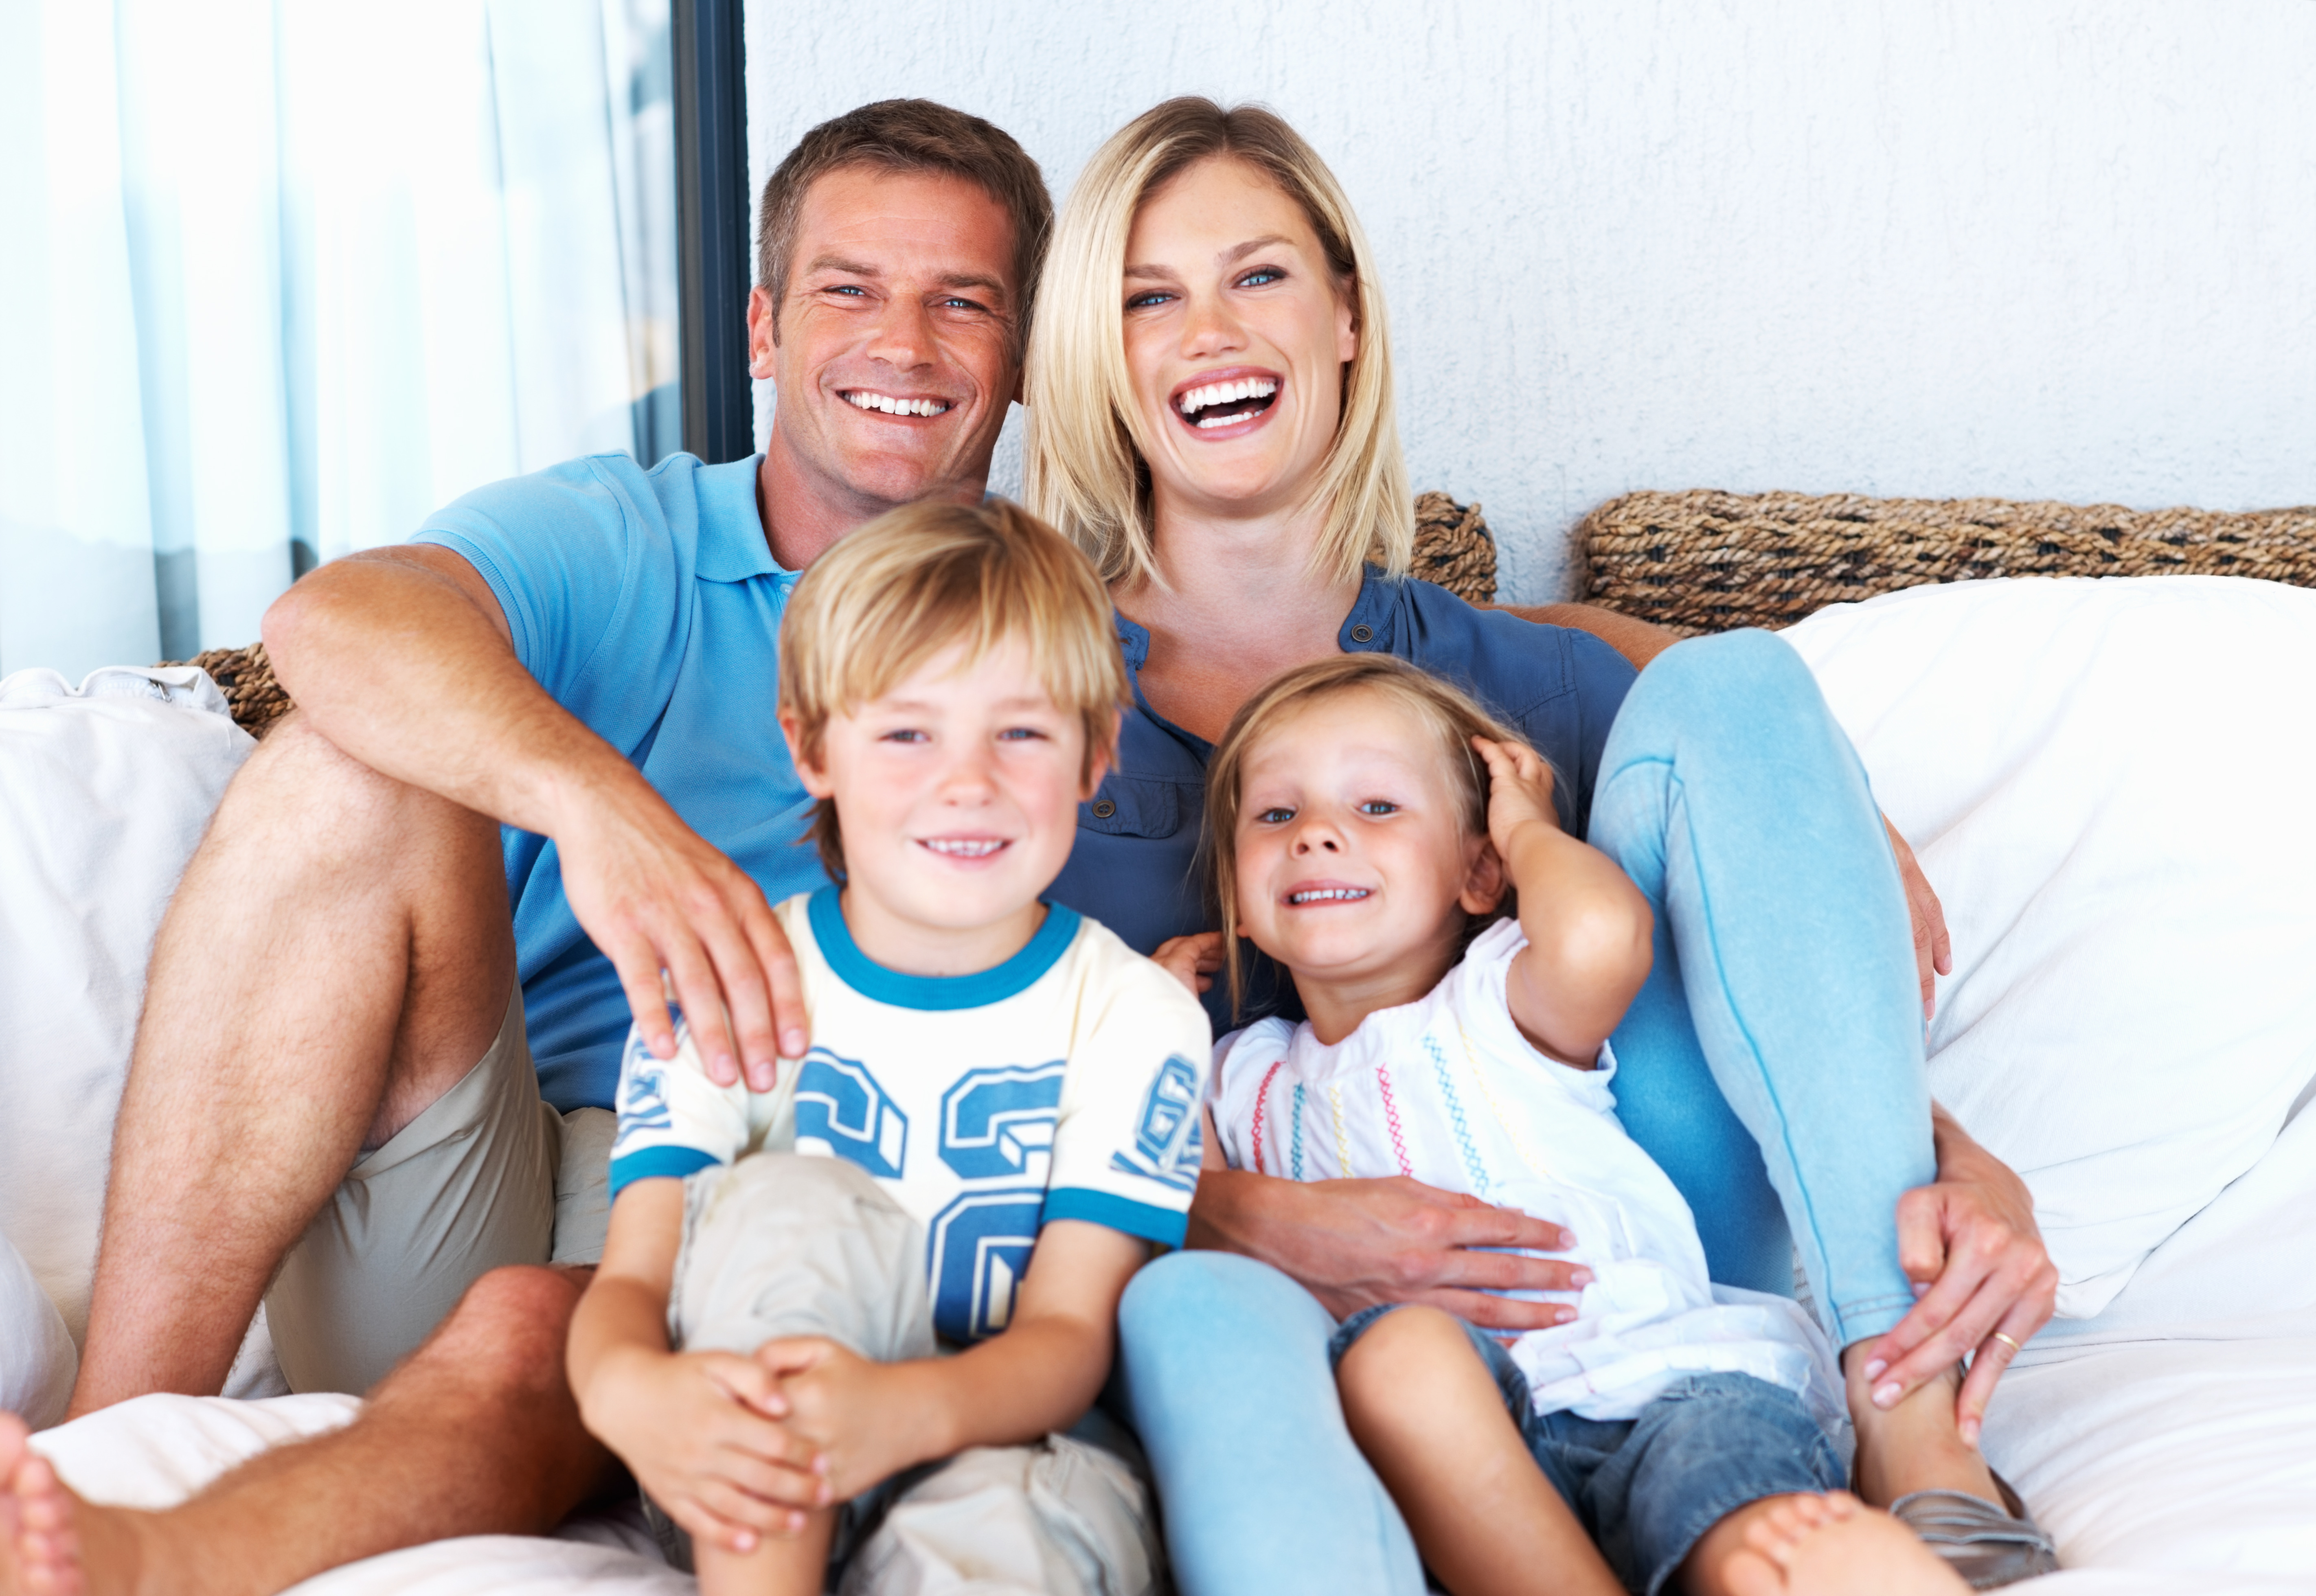 Universal Life Insurance (UL) offers cash accessibility